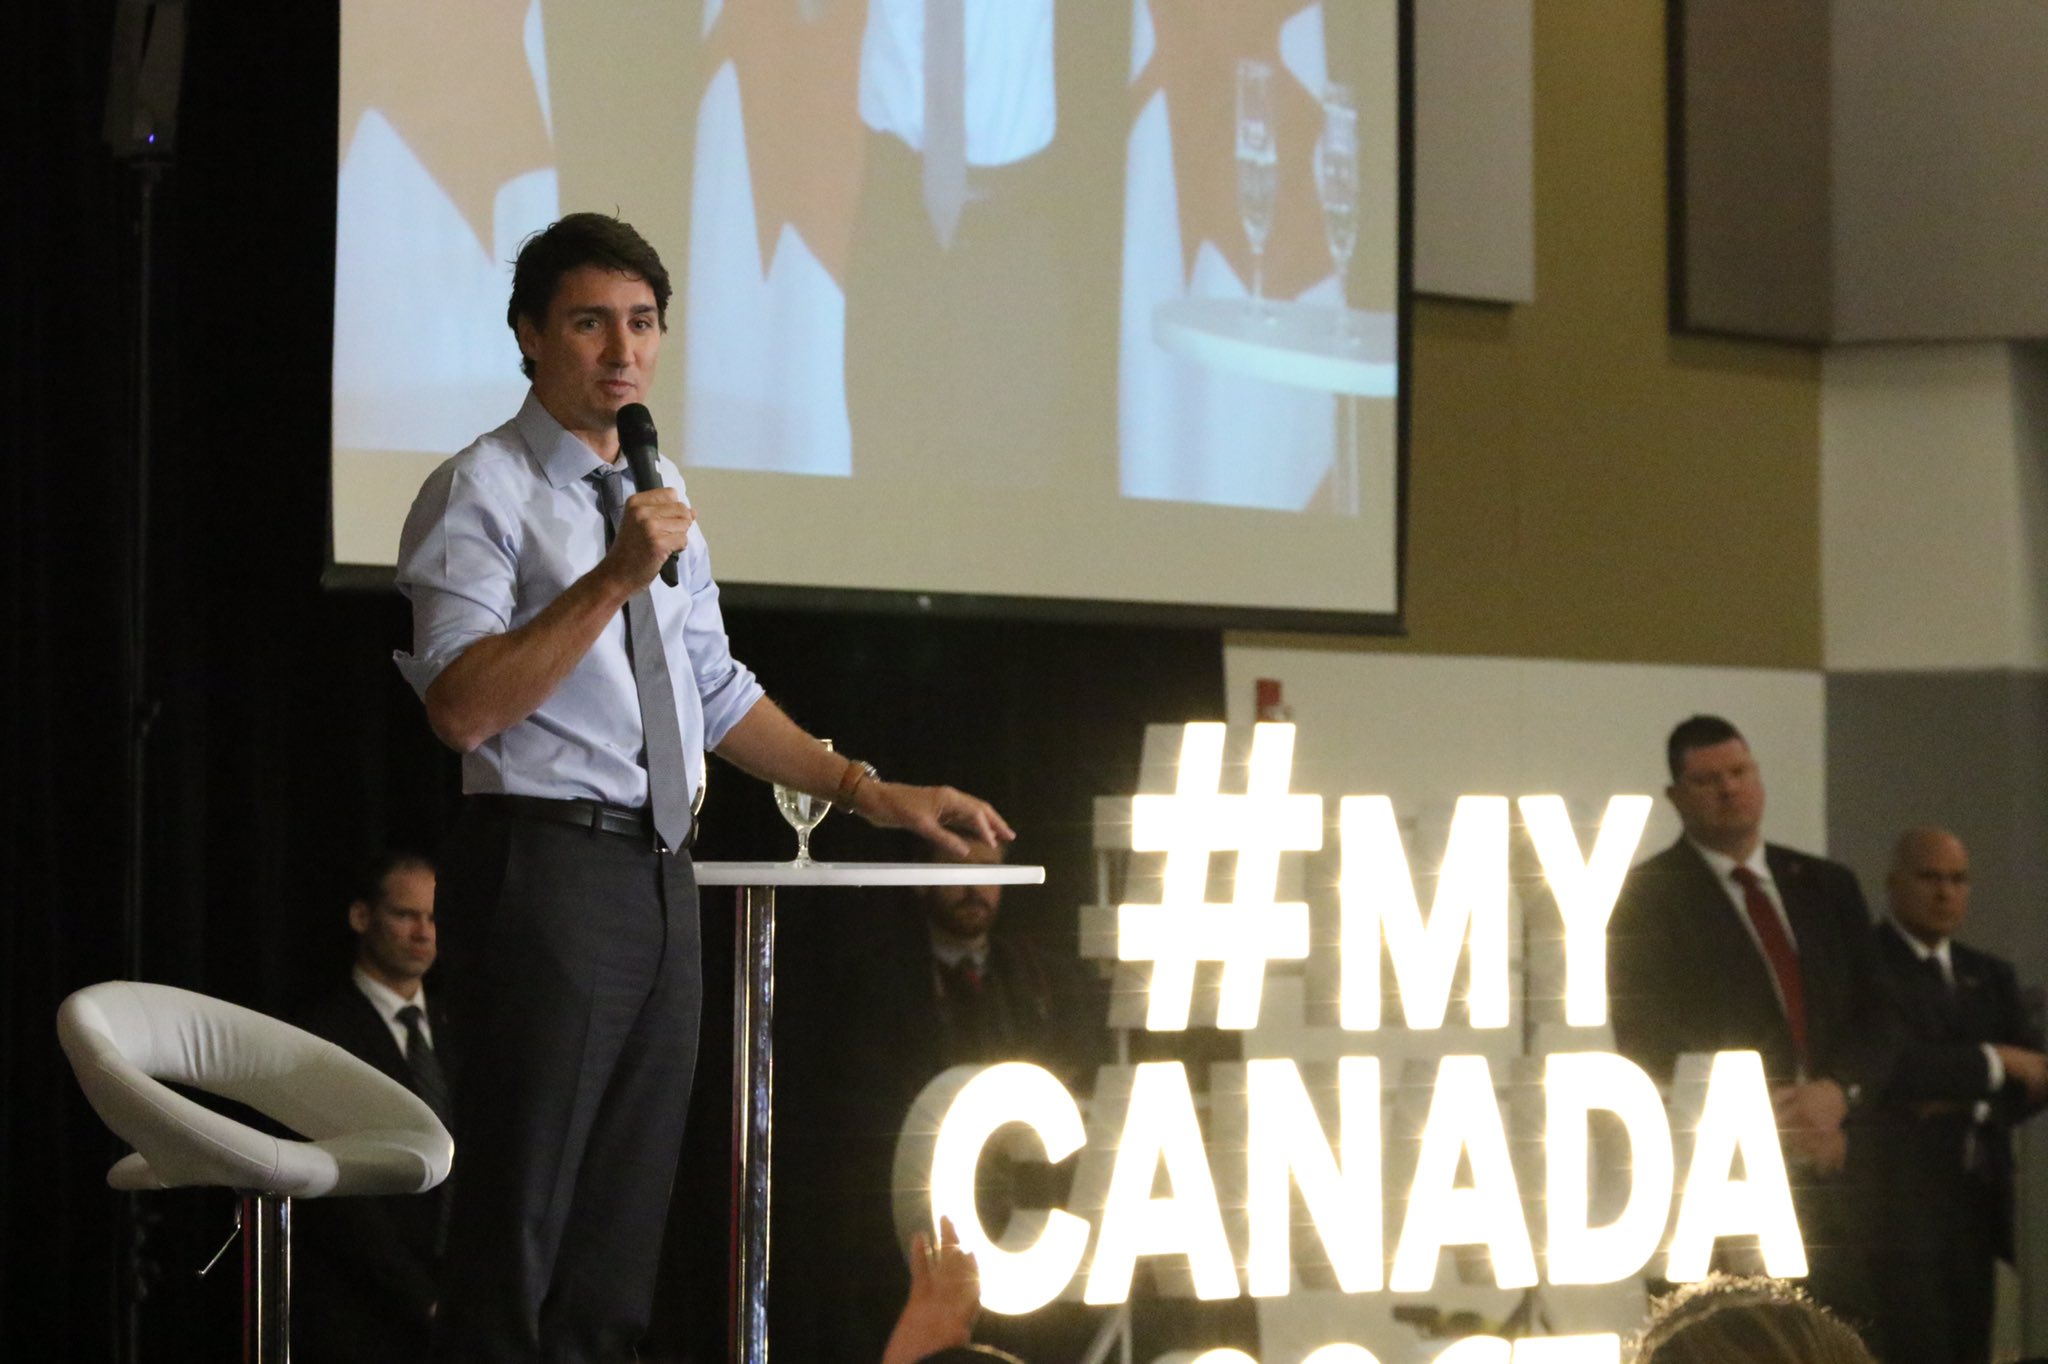 Thumbnail for #Converge2017: Prime Minister Justin Trudeau